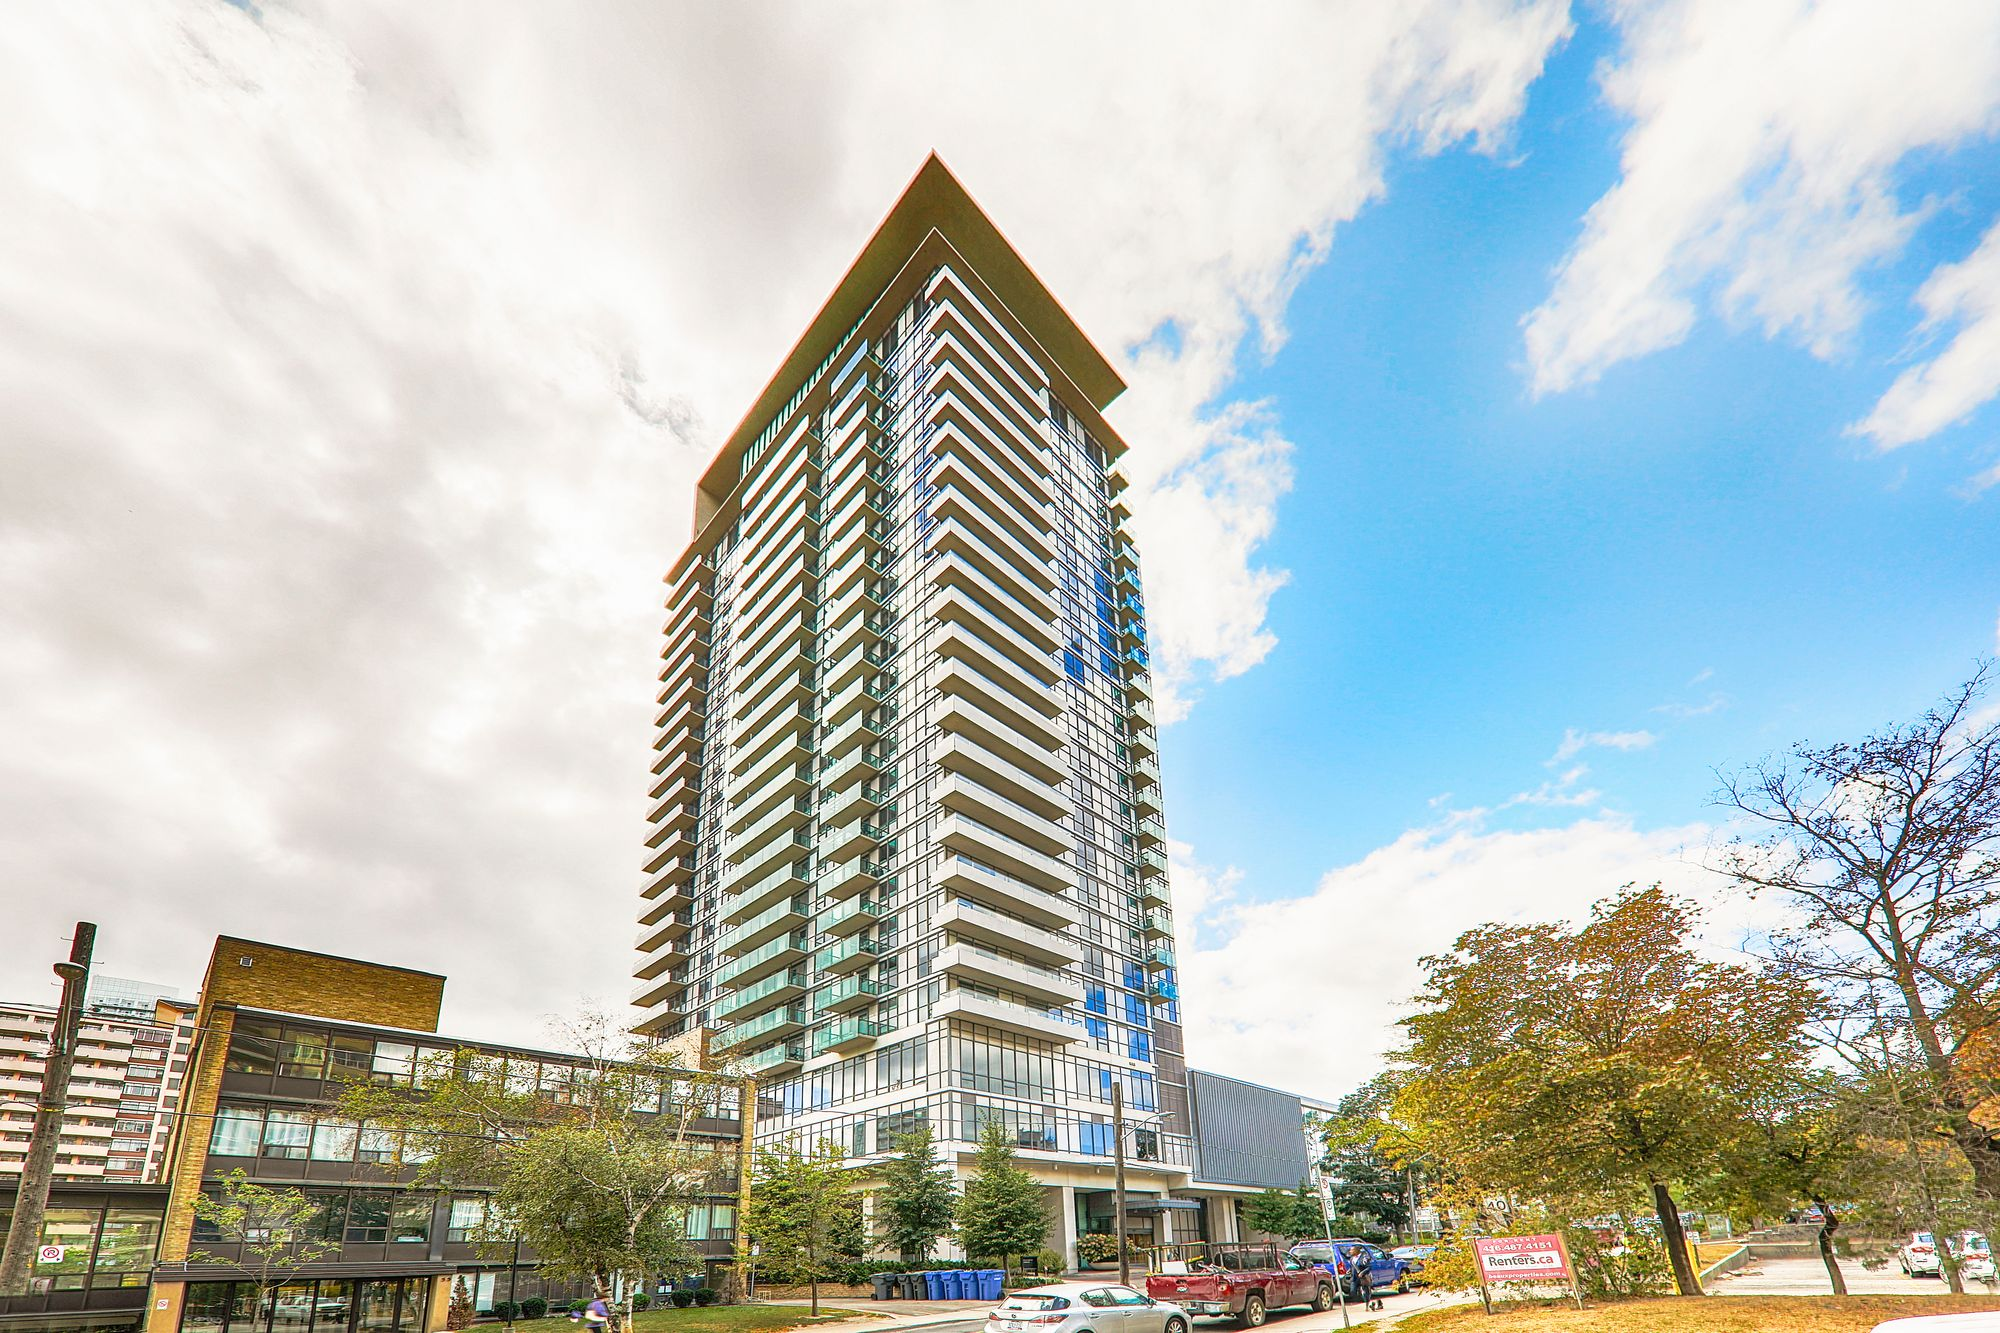 25 Broadway Ave. This condo at The Republic North Tower is located in  Midtown, Toronto - image #1 of 6 by Strata.ca